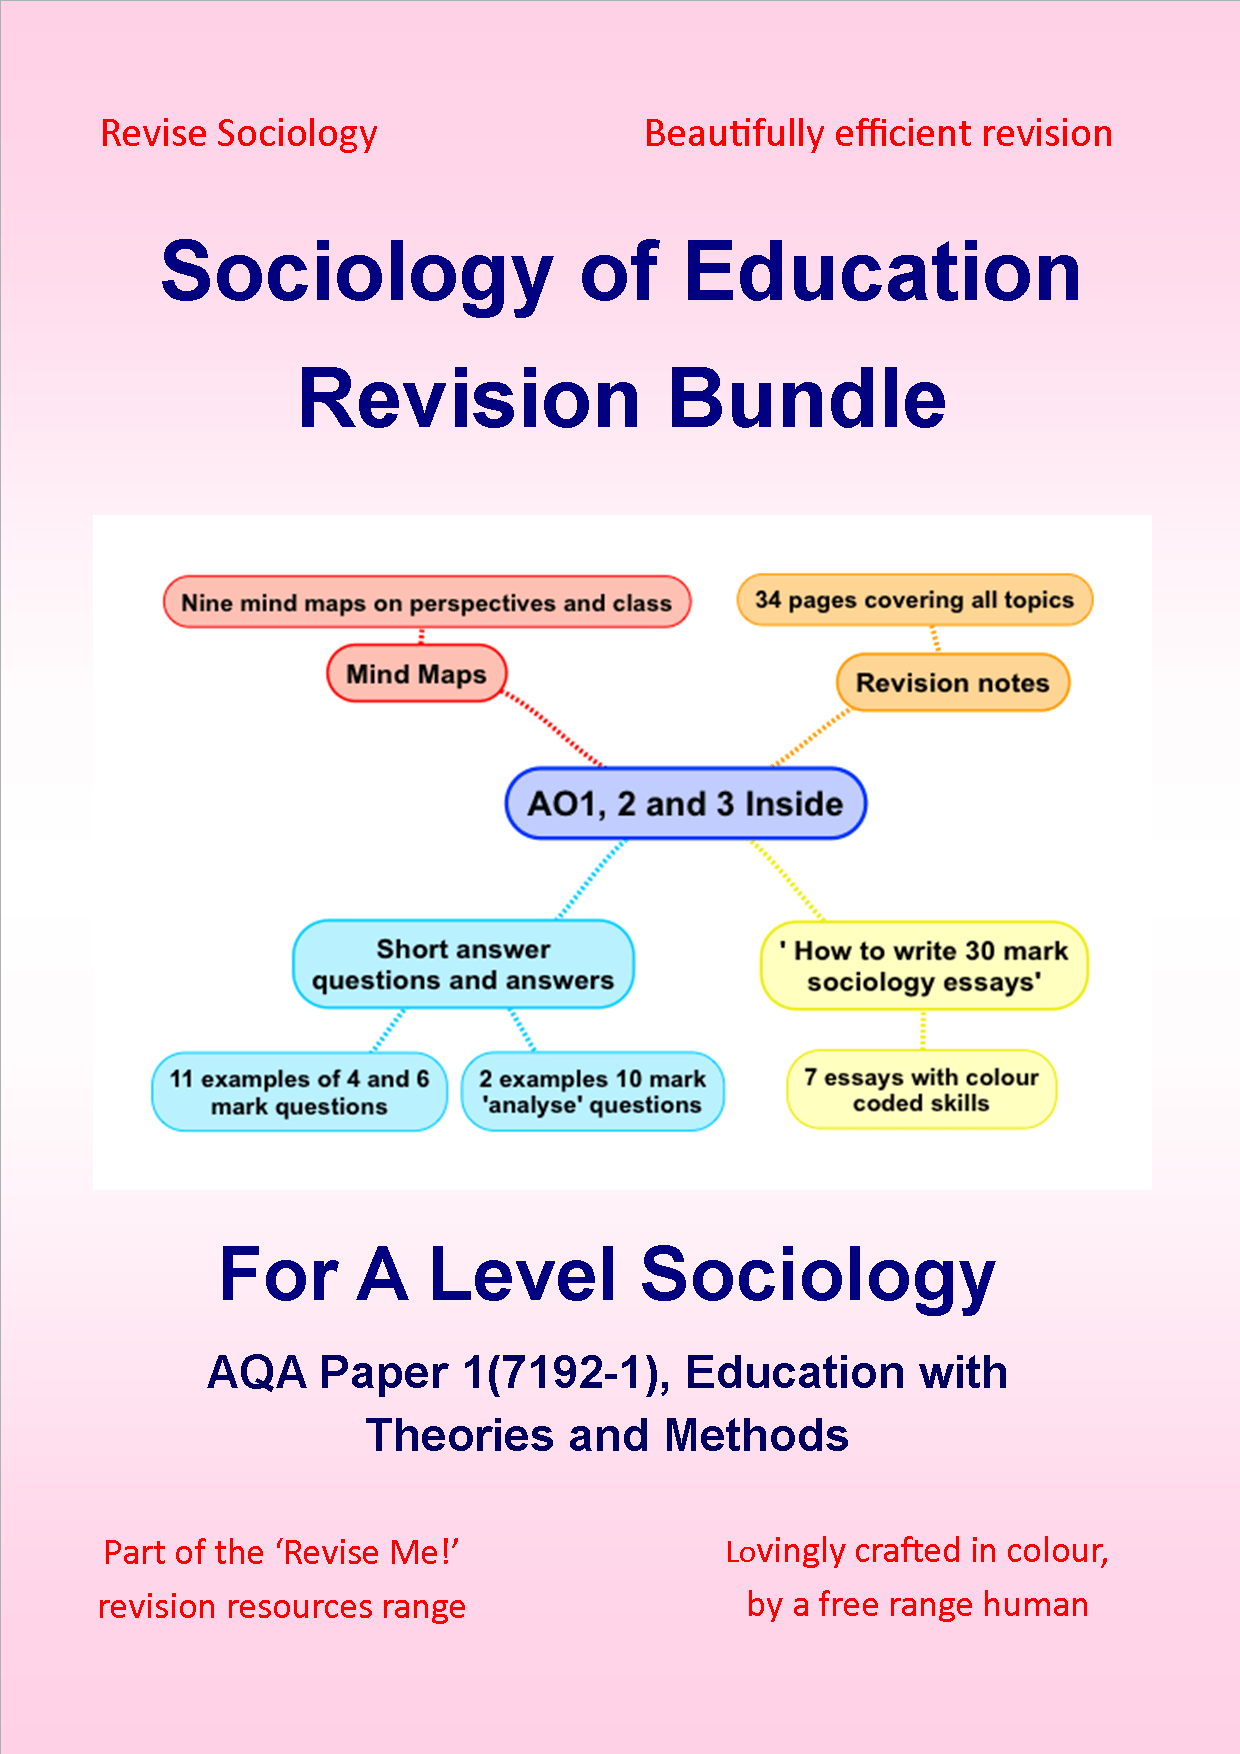 Science Topics For Essays A Level Sociology  How To Write A High School Application Essay also Essays On Health A Level Sociology Of Education Revision Bundle  Revisesociology Causes Of The English Civil War Essay